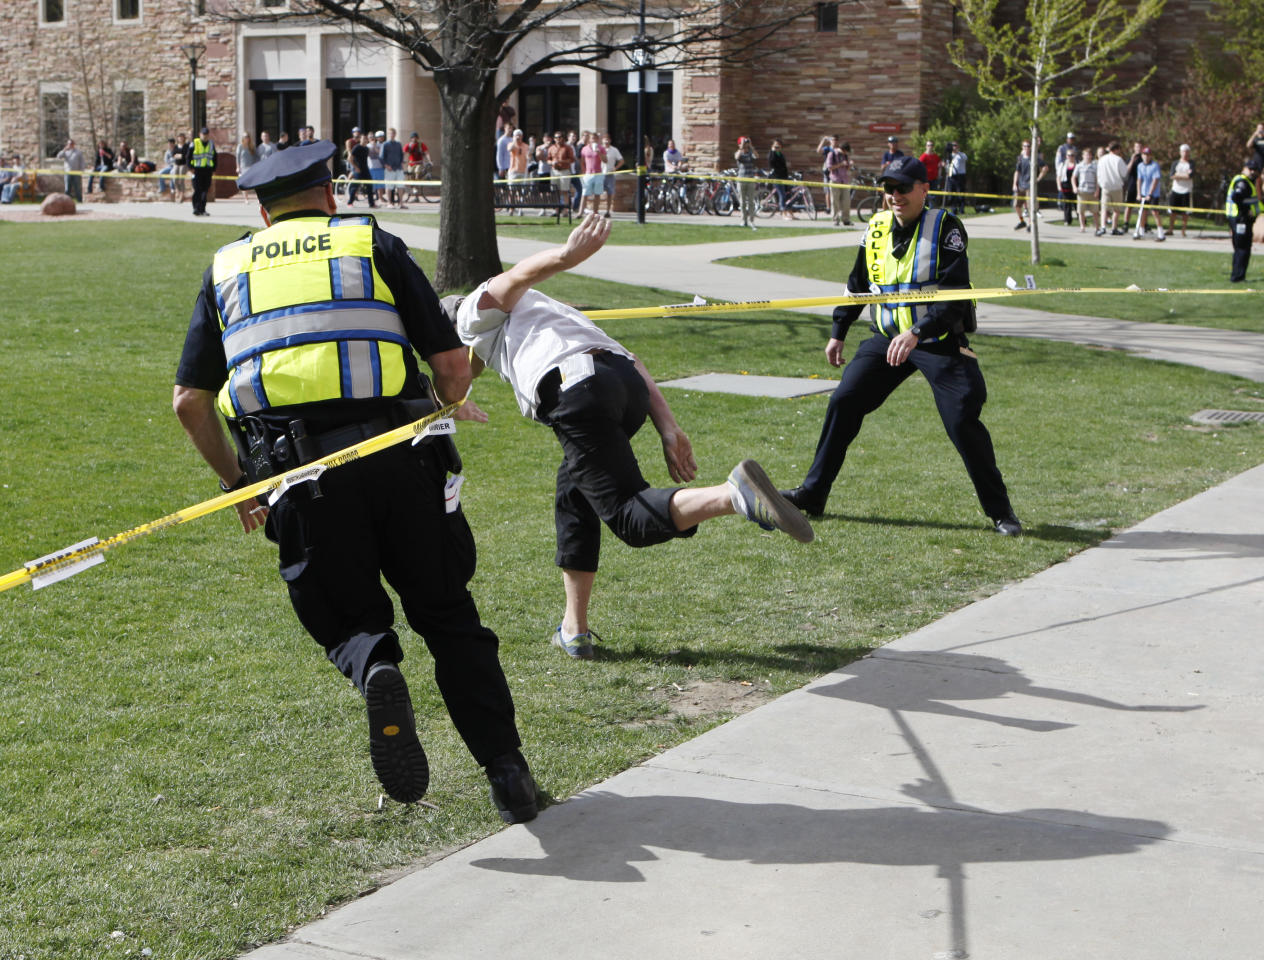 Police try to stop a student as he runs through the police barrier on the Norlin Quad at the University of Colorado in Boulder, Colo., on Friday, April 20, 2012, at 4:20pm. He was run down by police and arrested after crossing the barrier. Police blocked off the quad to prevent a 420 marijuana smoke out. (AP Photo/Ed Andrieski)